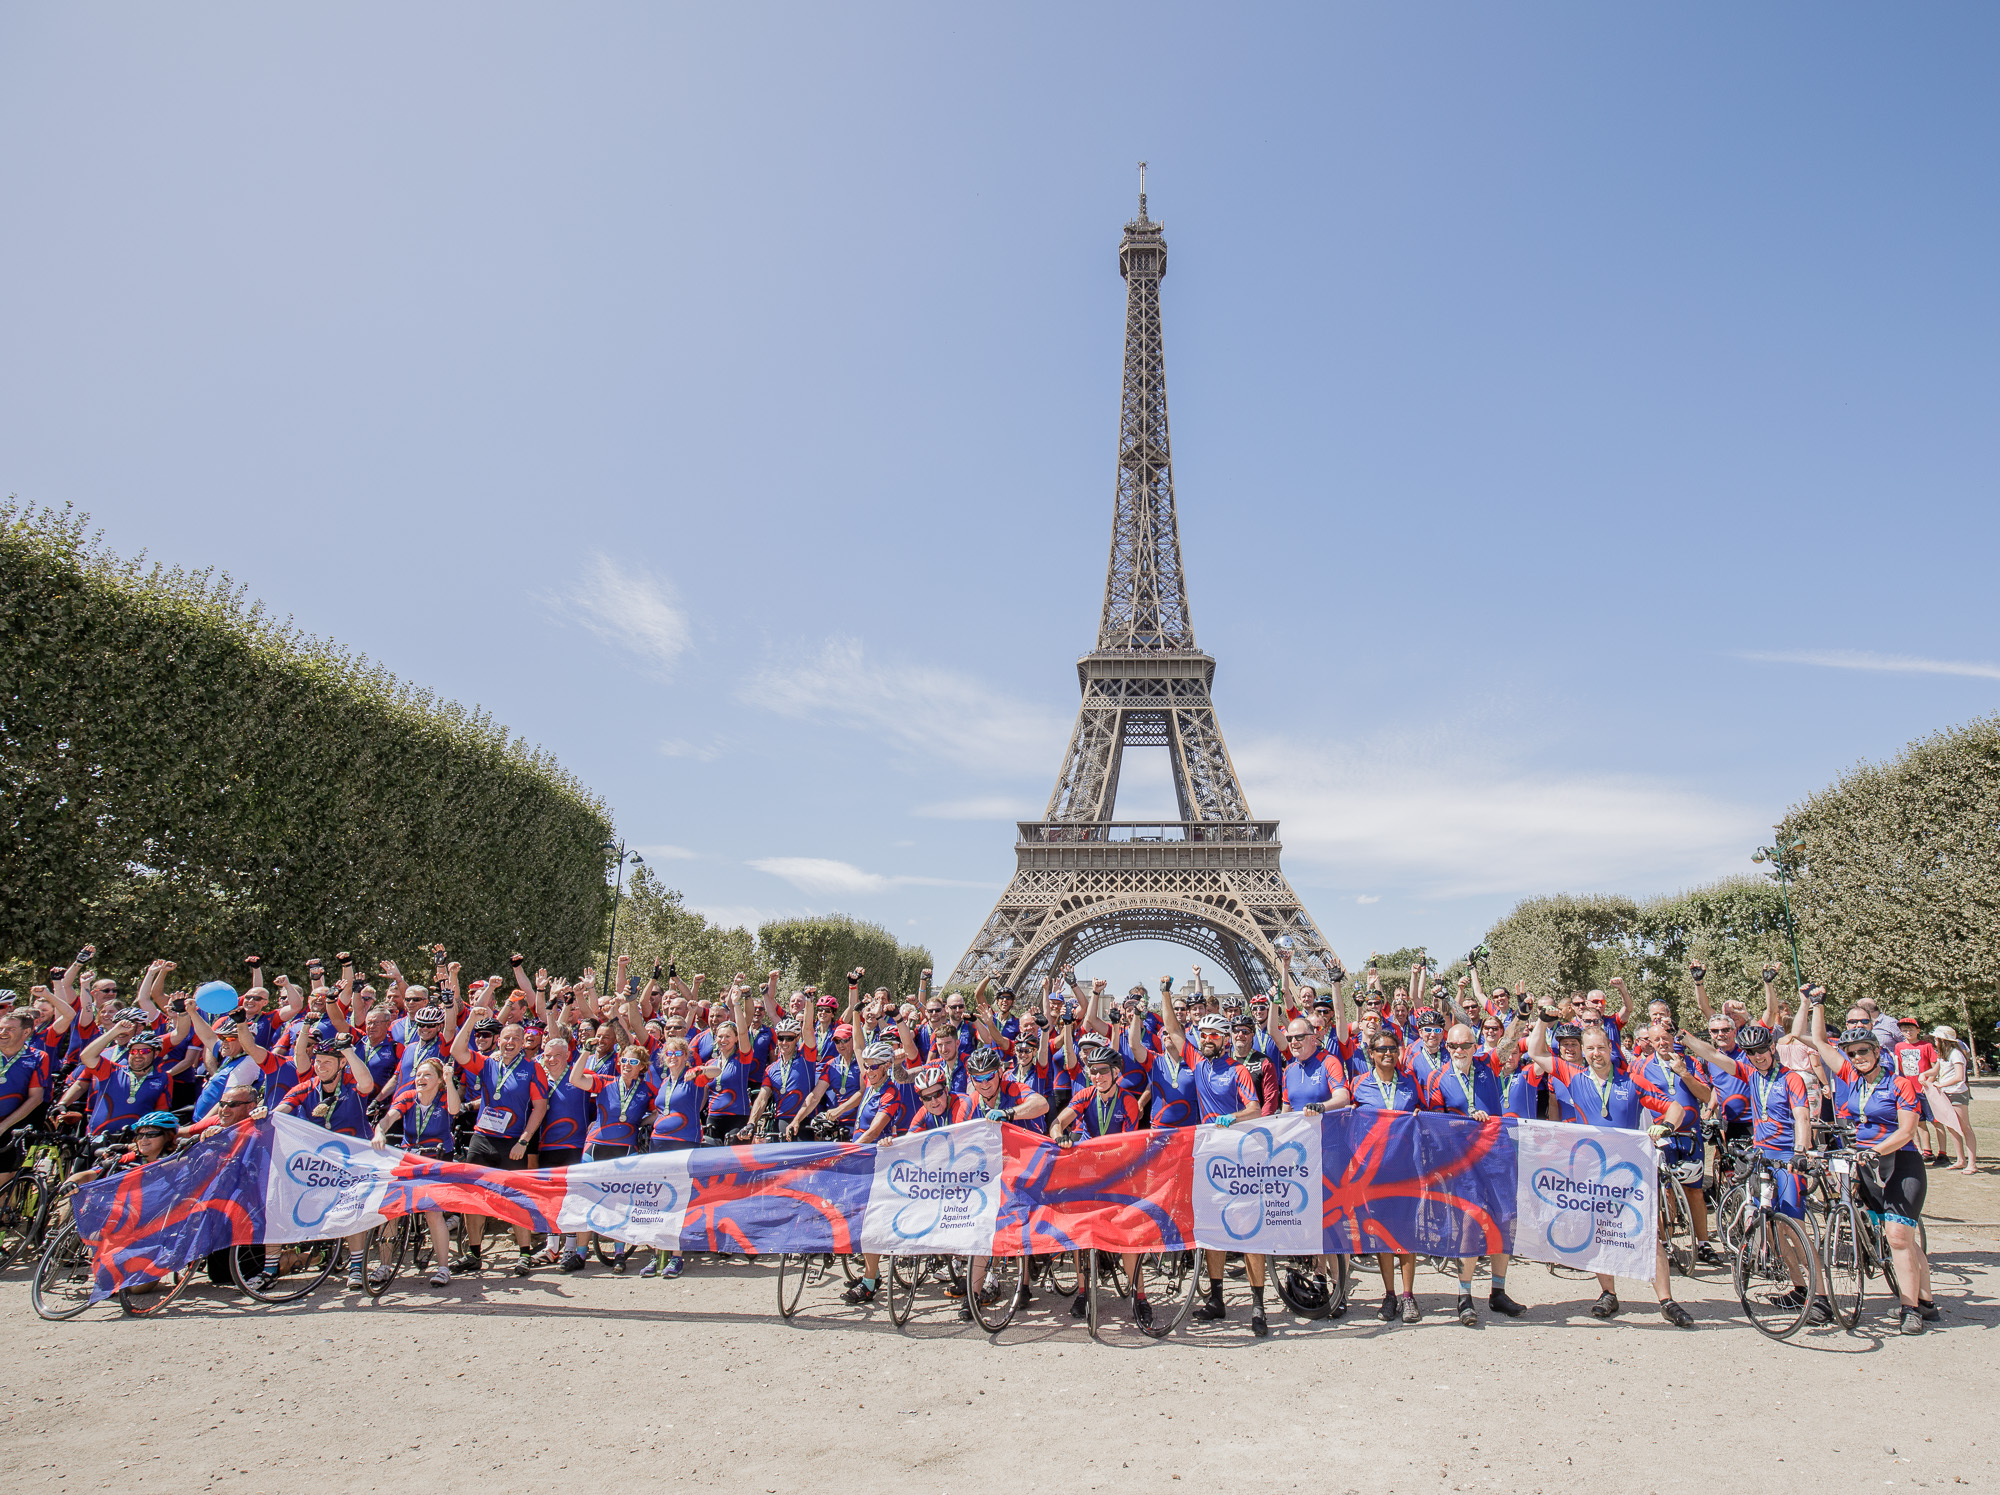 London to Paris Cycle Challenge 2018 - We all did it